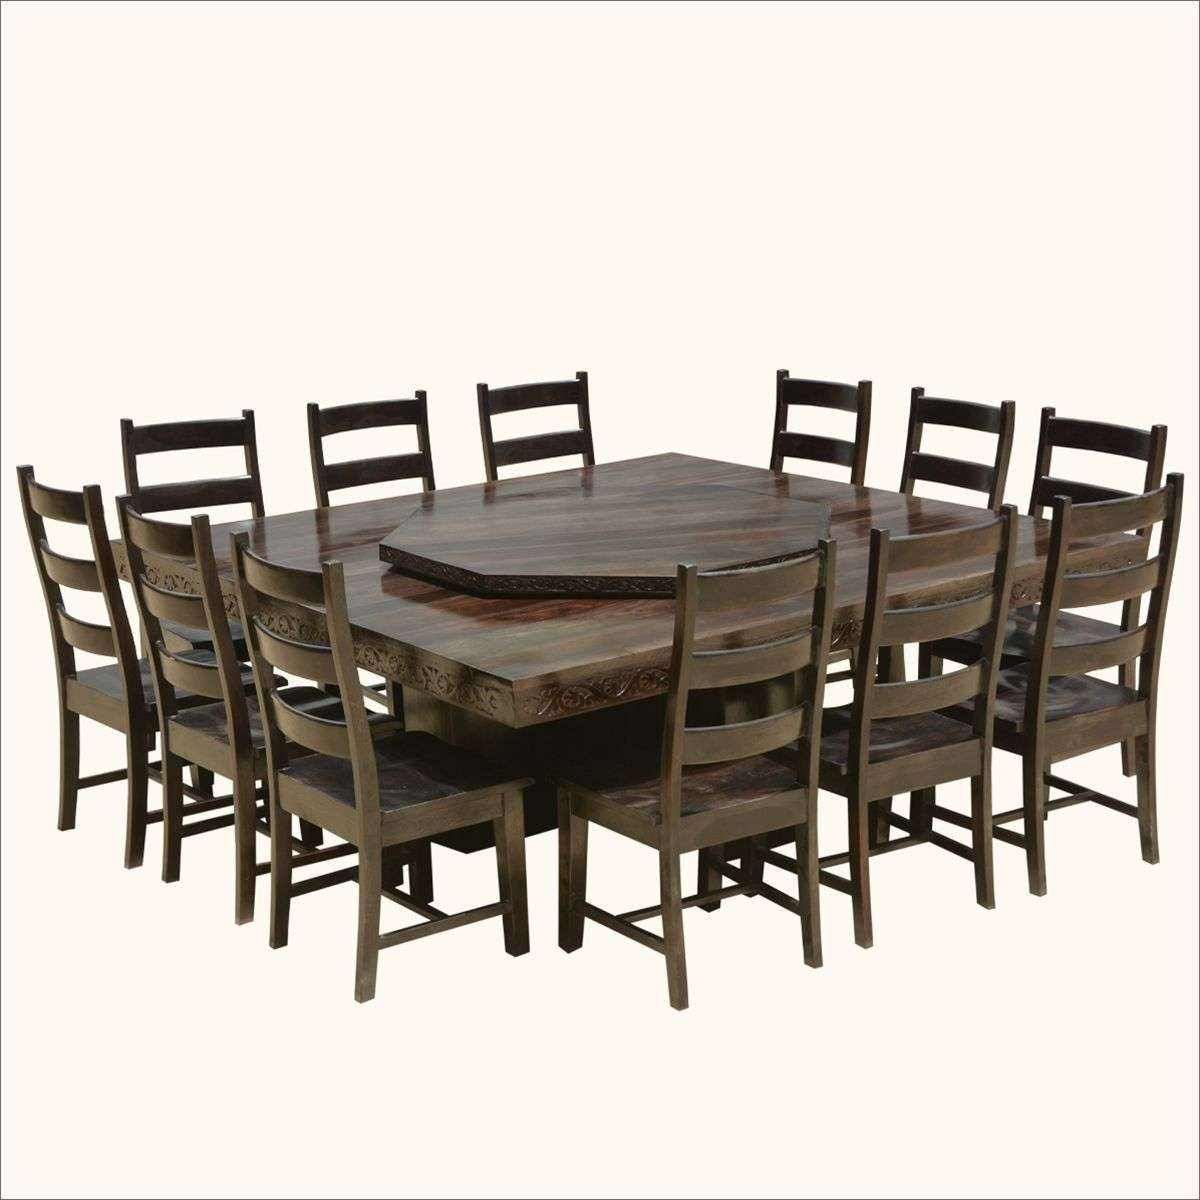 Square Tables For 12 Google Search Wooden Dining Table Designs